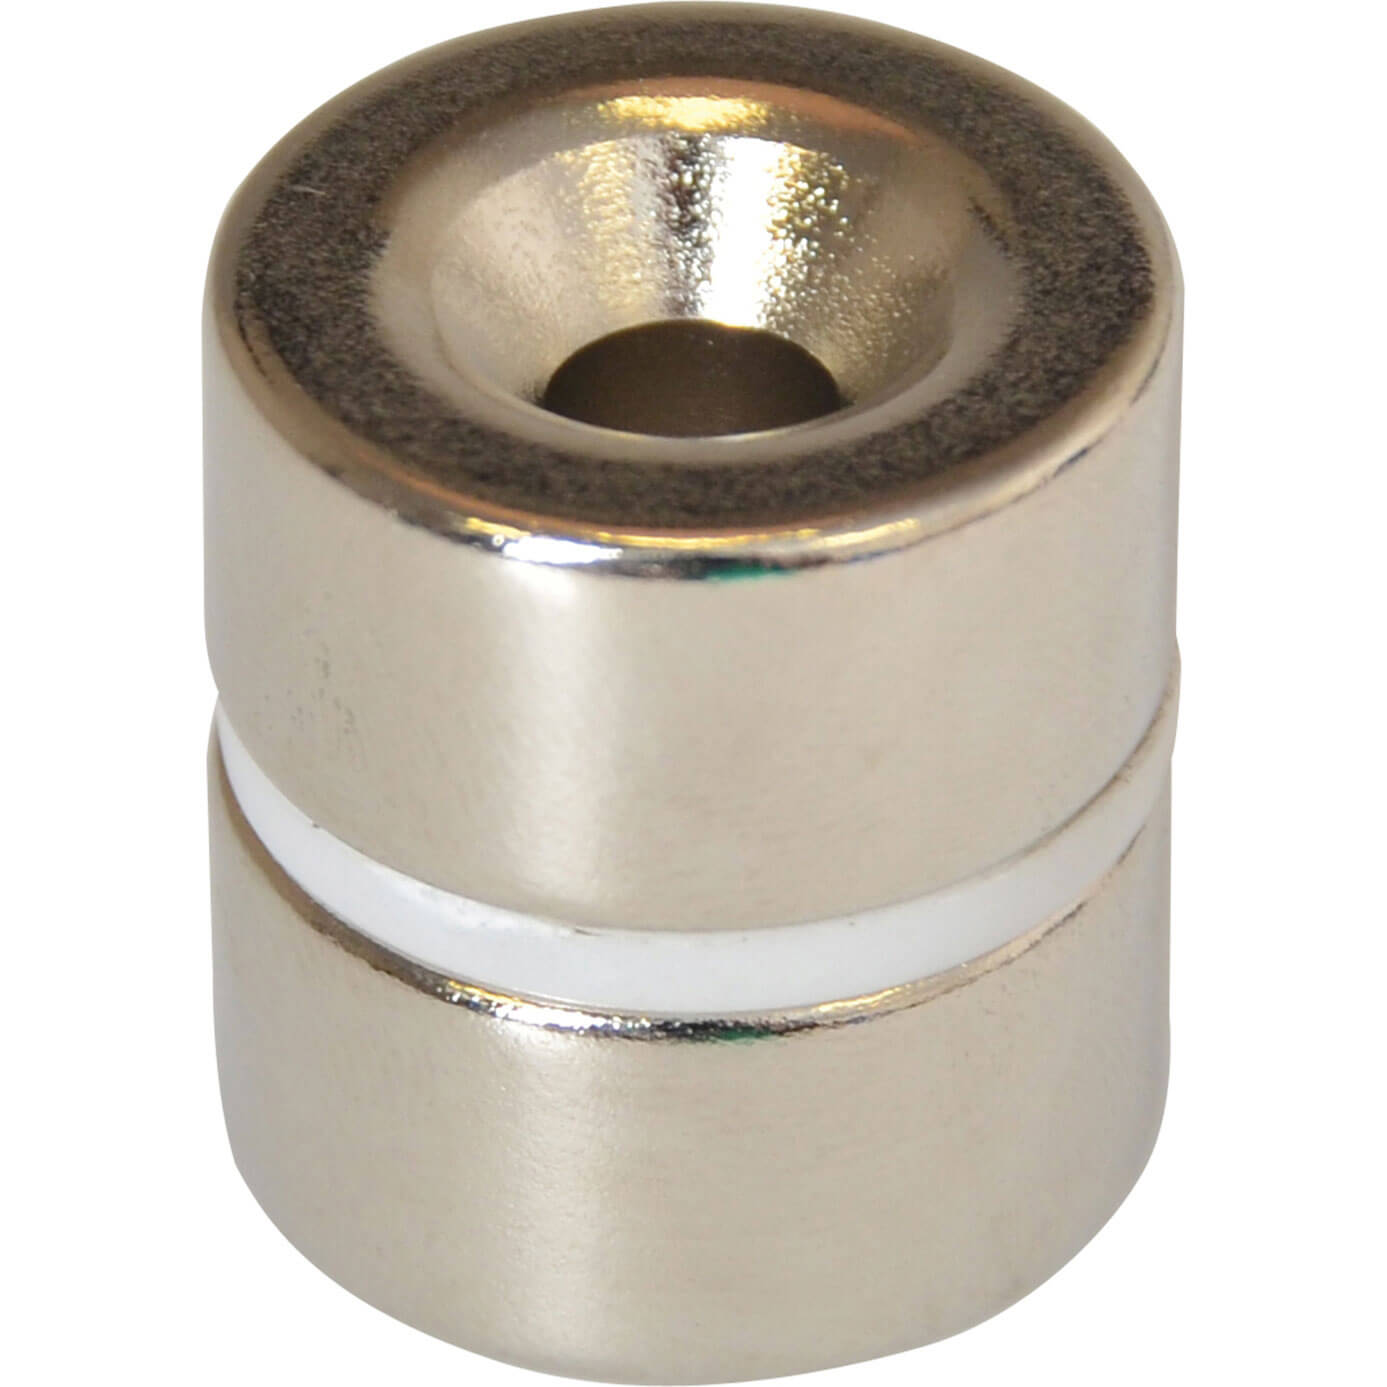 Image of E Magnet 314 Countersunk Magnets 20mm Pack of 2